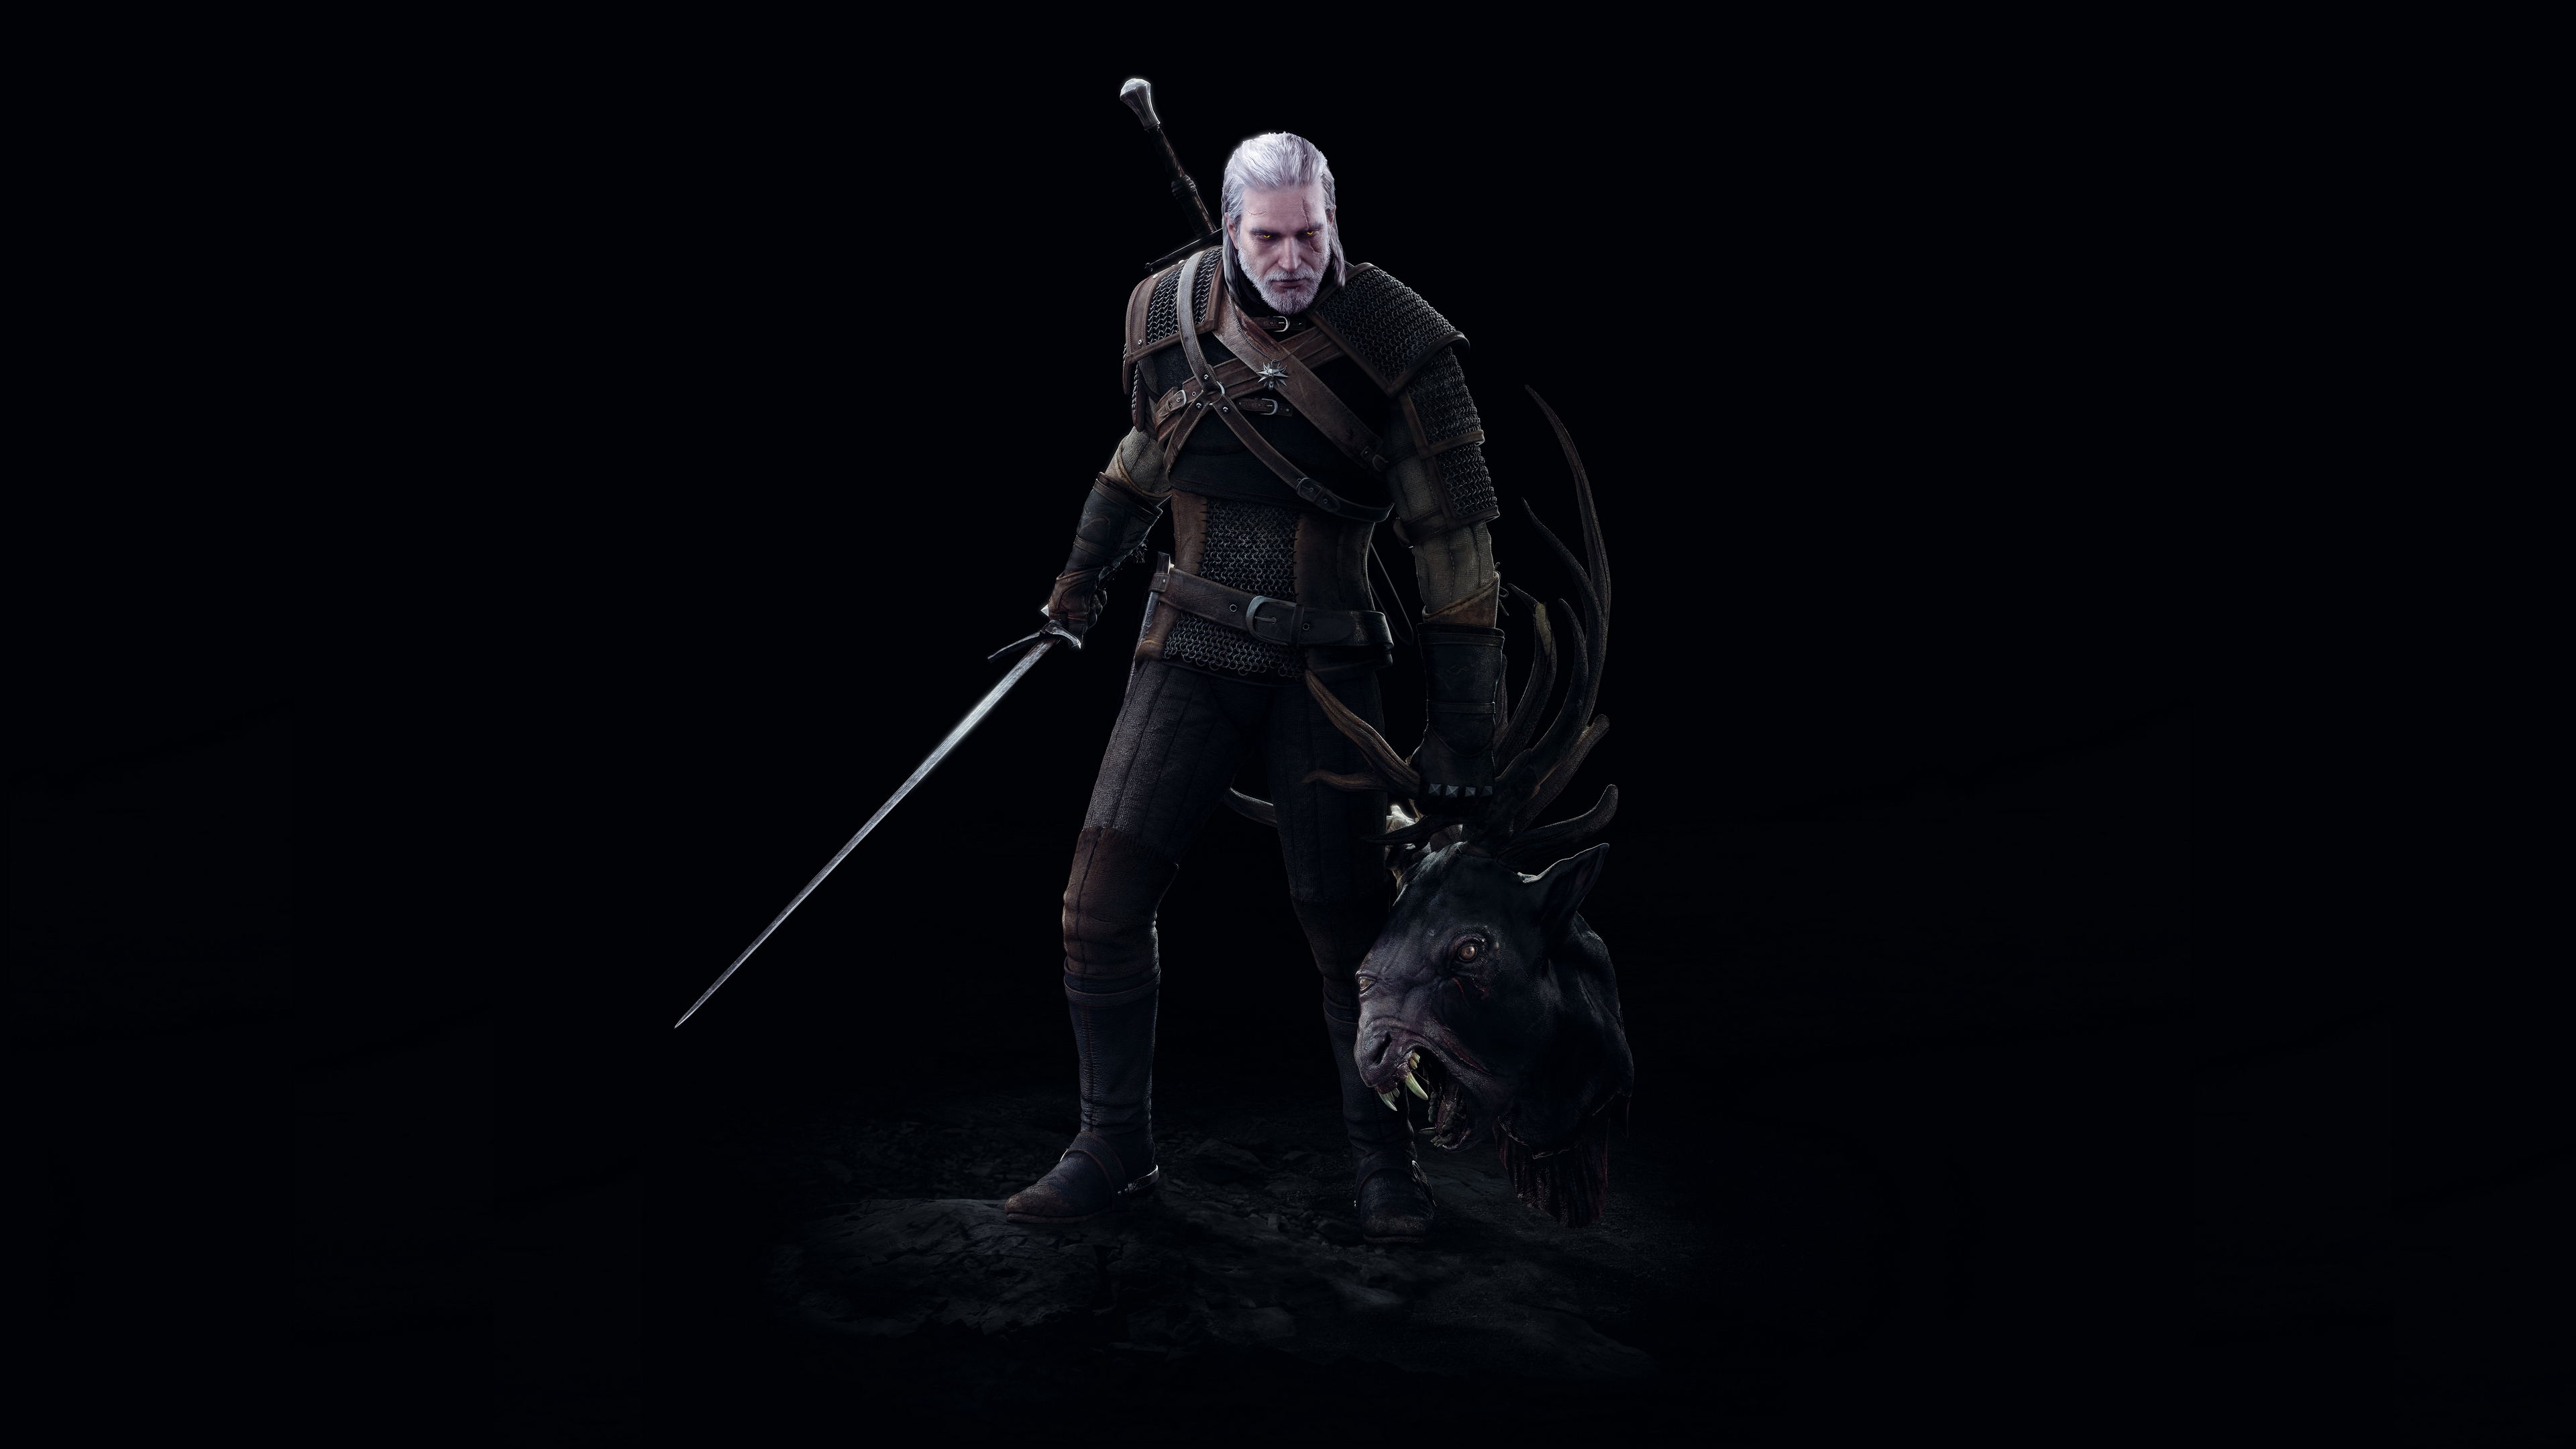 Wallpaper 4k The Witcher 3 Wild Hunt Geralt Battle Head Art 4k